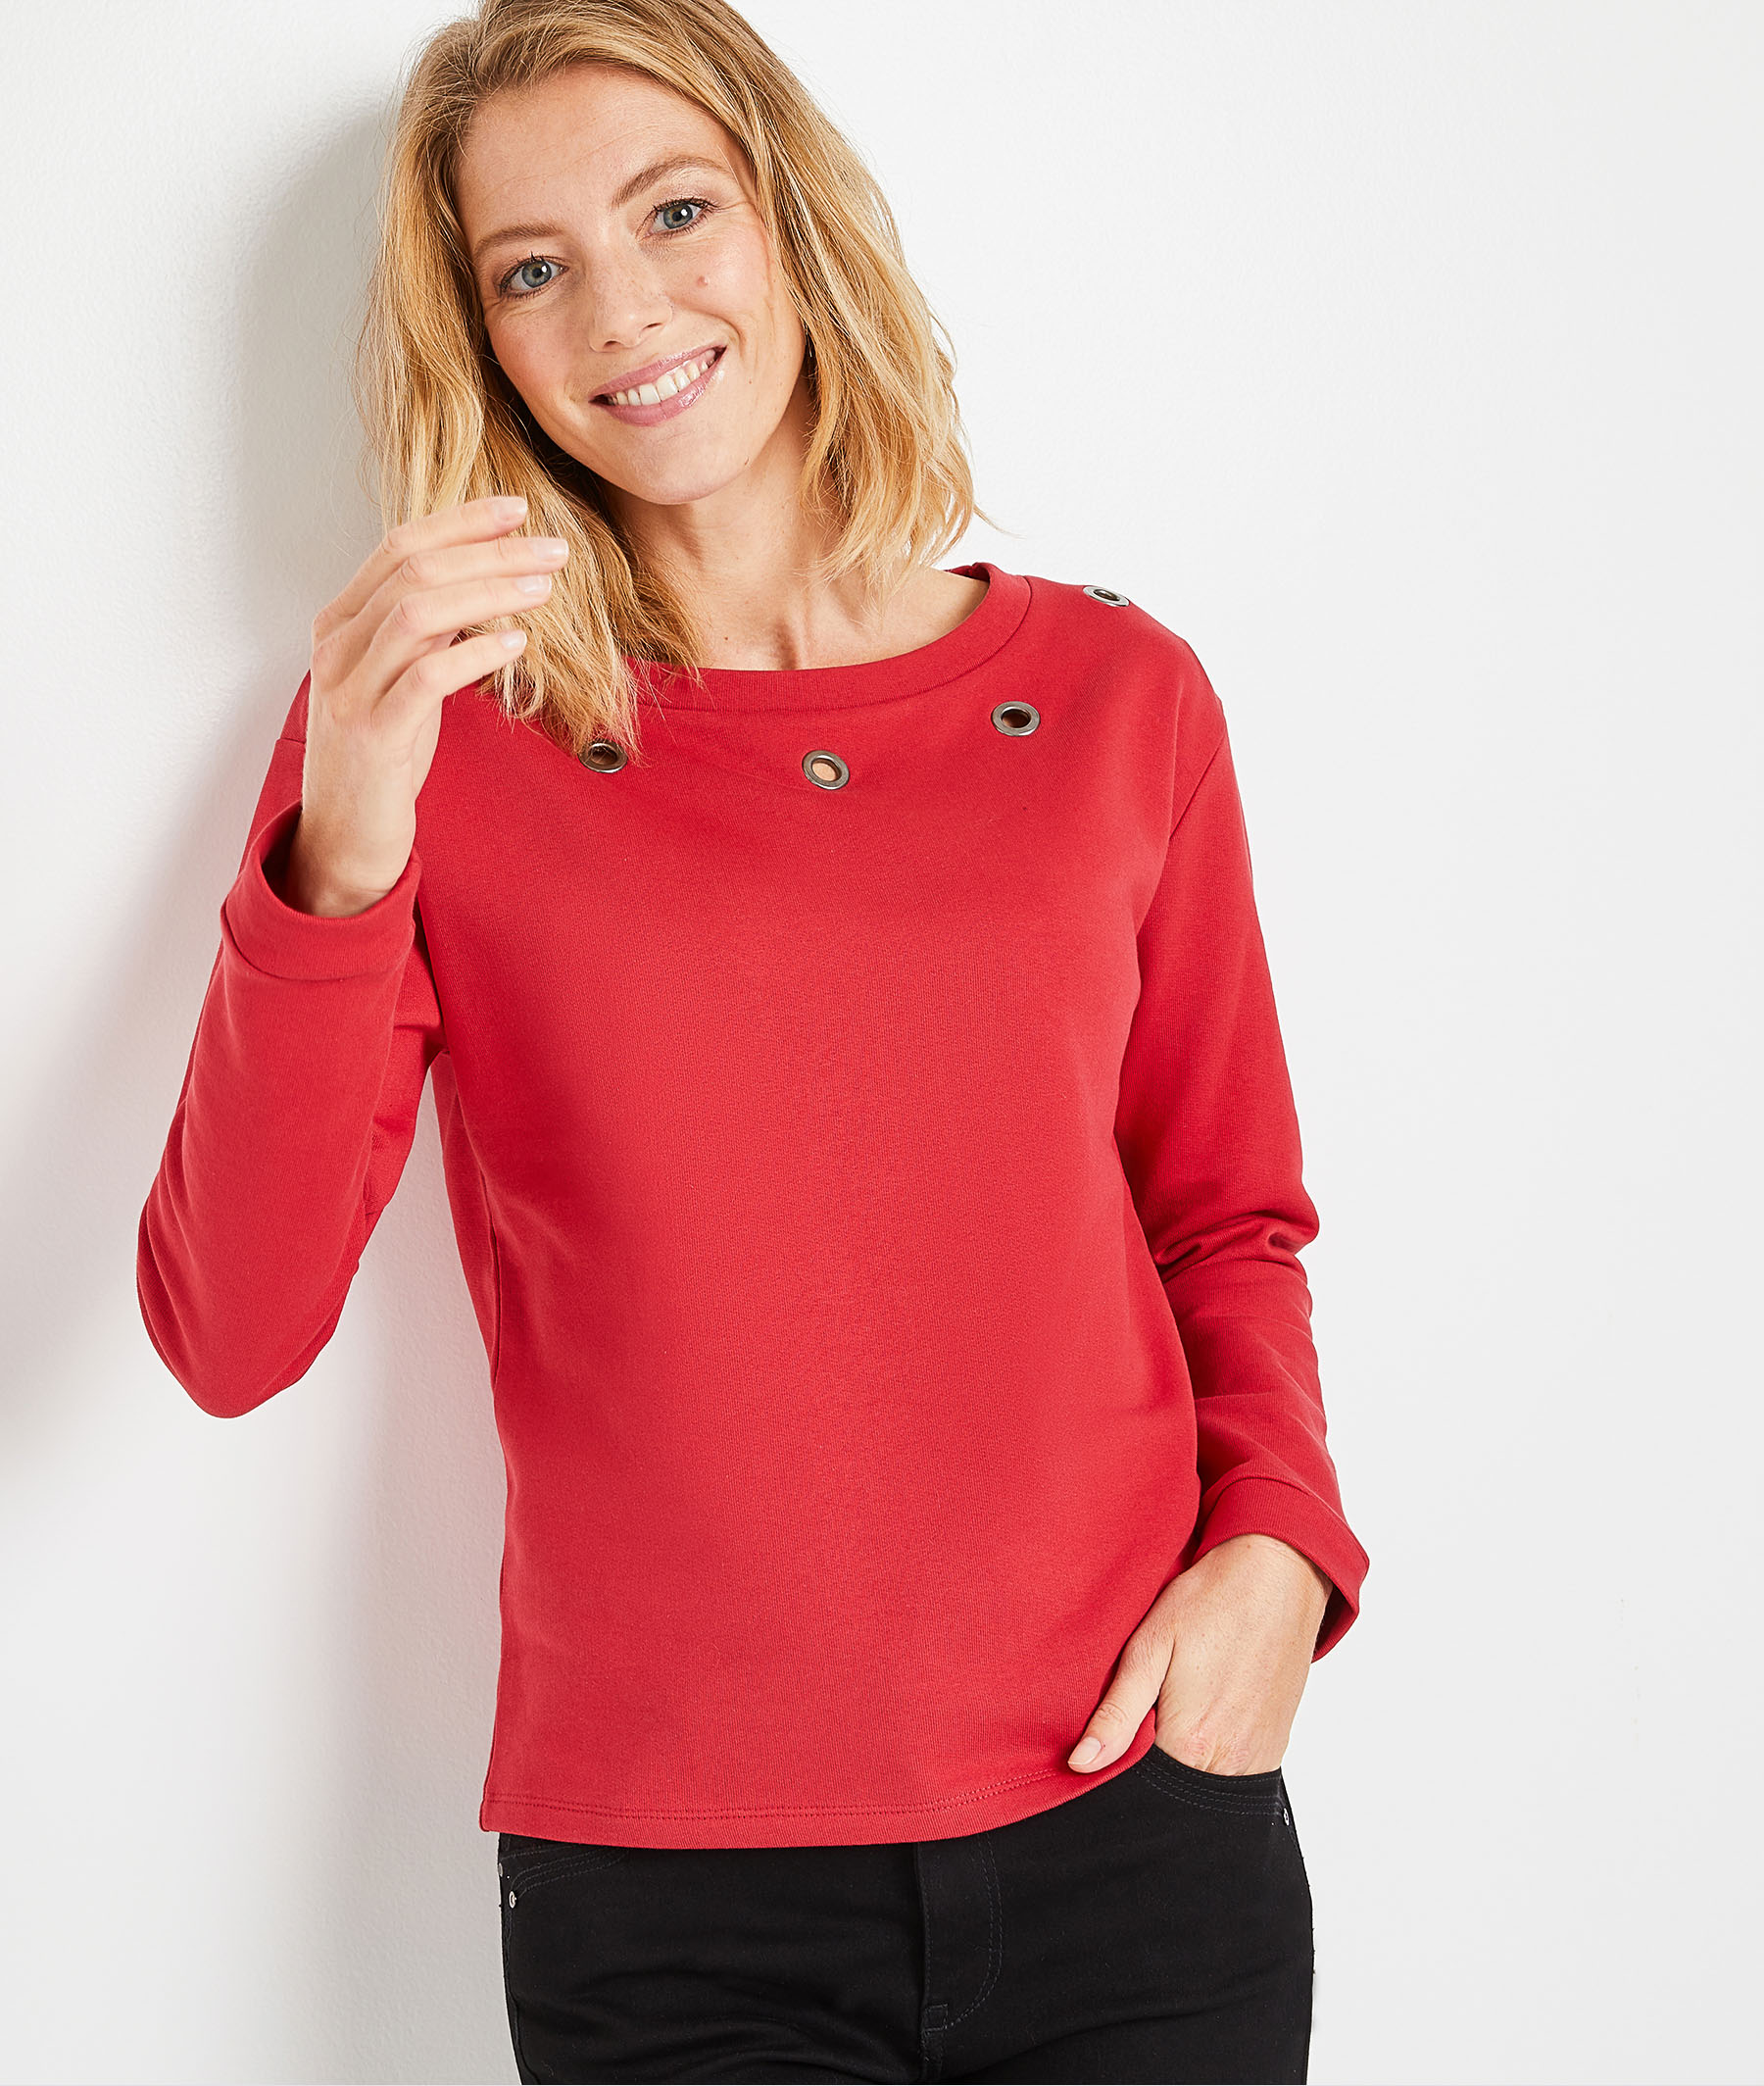 Sweat rouge en coton à oeillets femme ROUGE